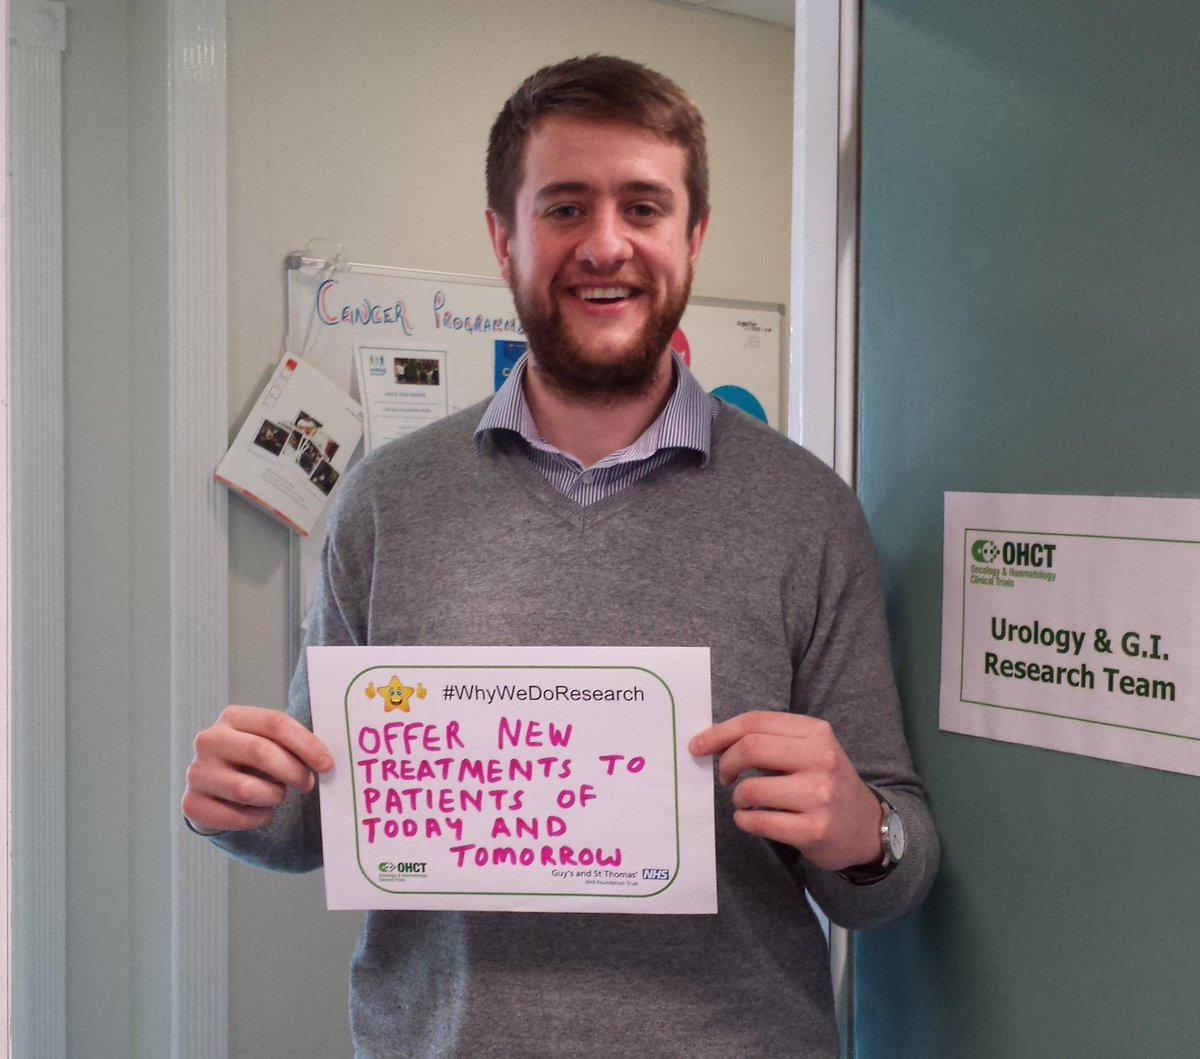 One of our urology clinical trials practitioners on #WhyWeDoResearch at @GSTTnhs http://t.co/Ln968jB03z